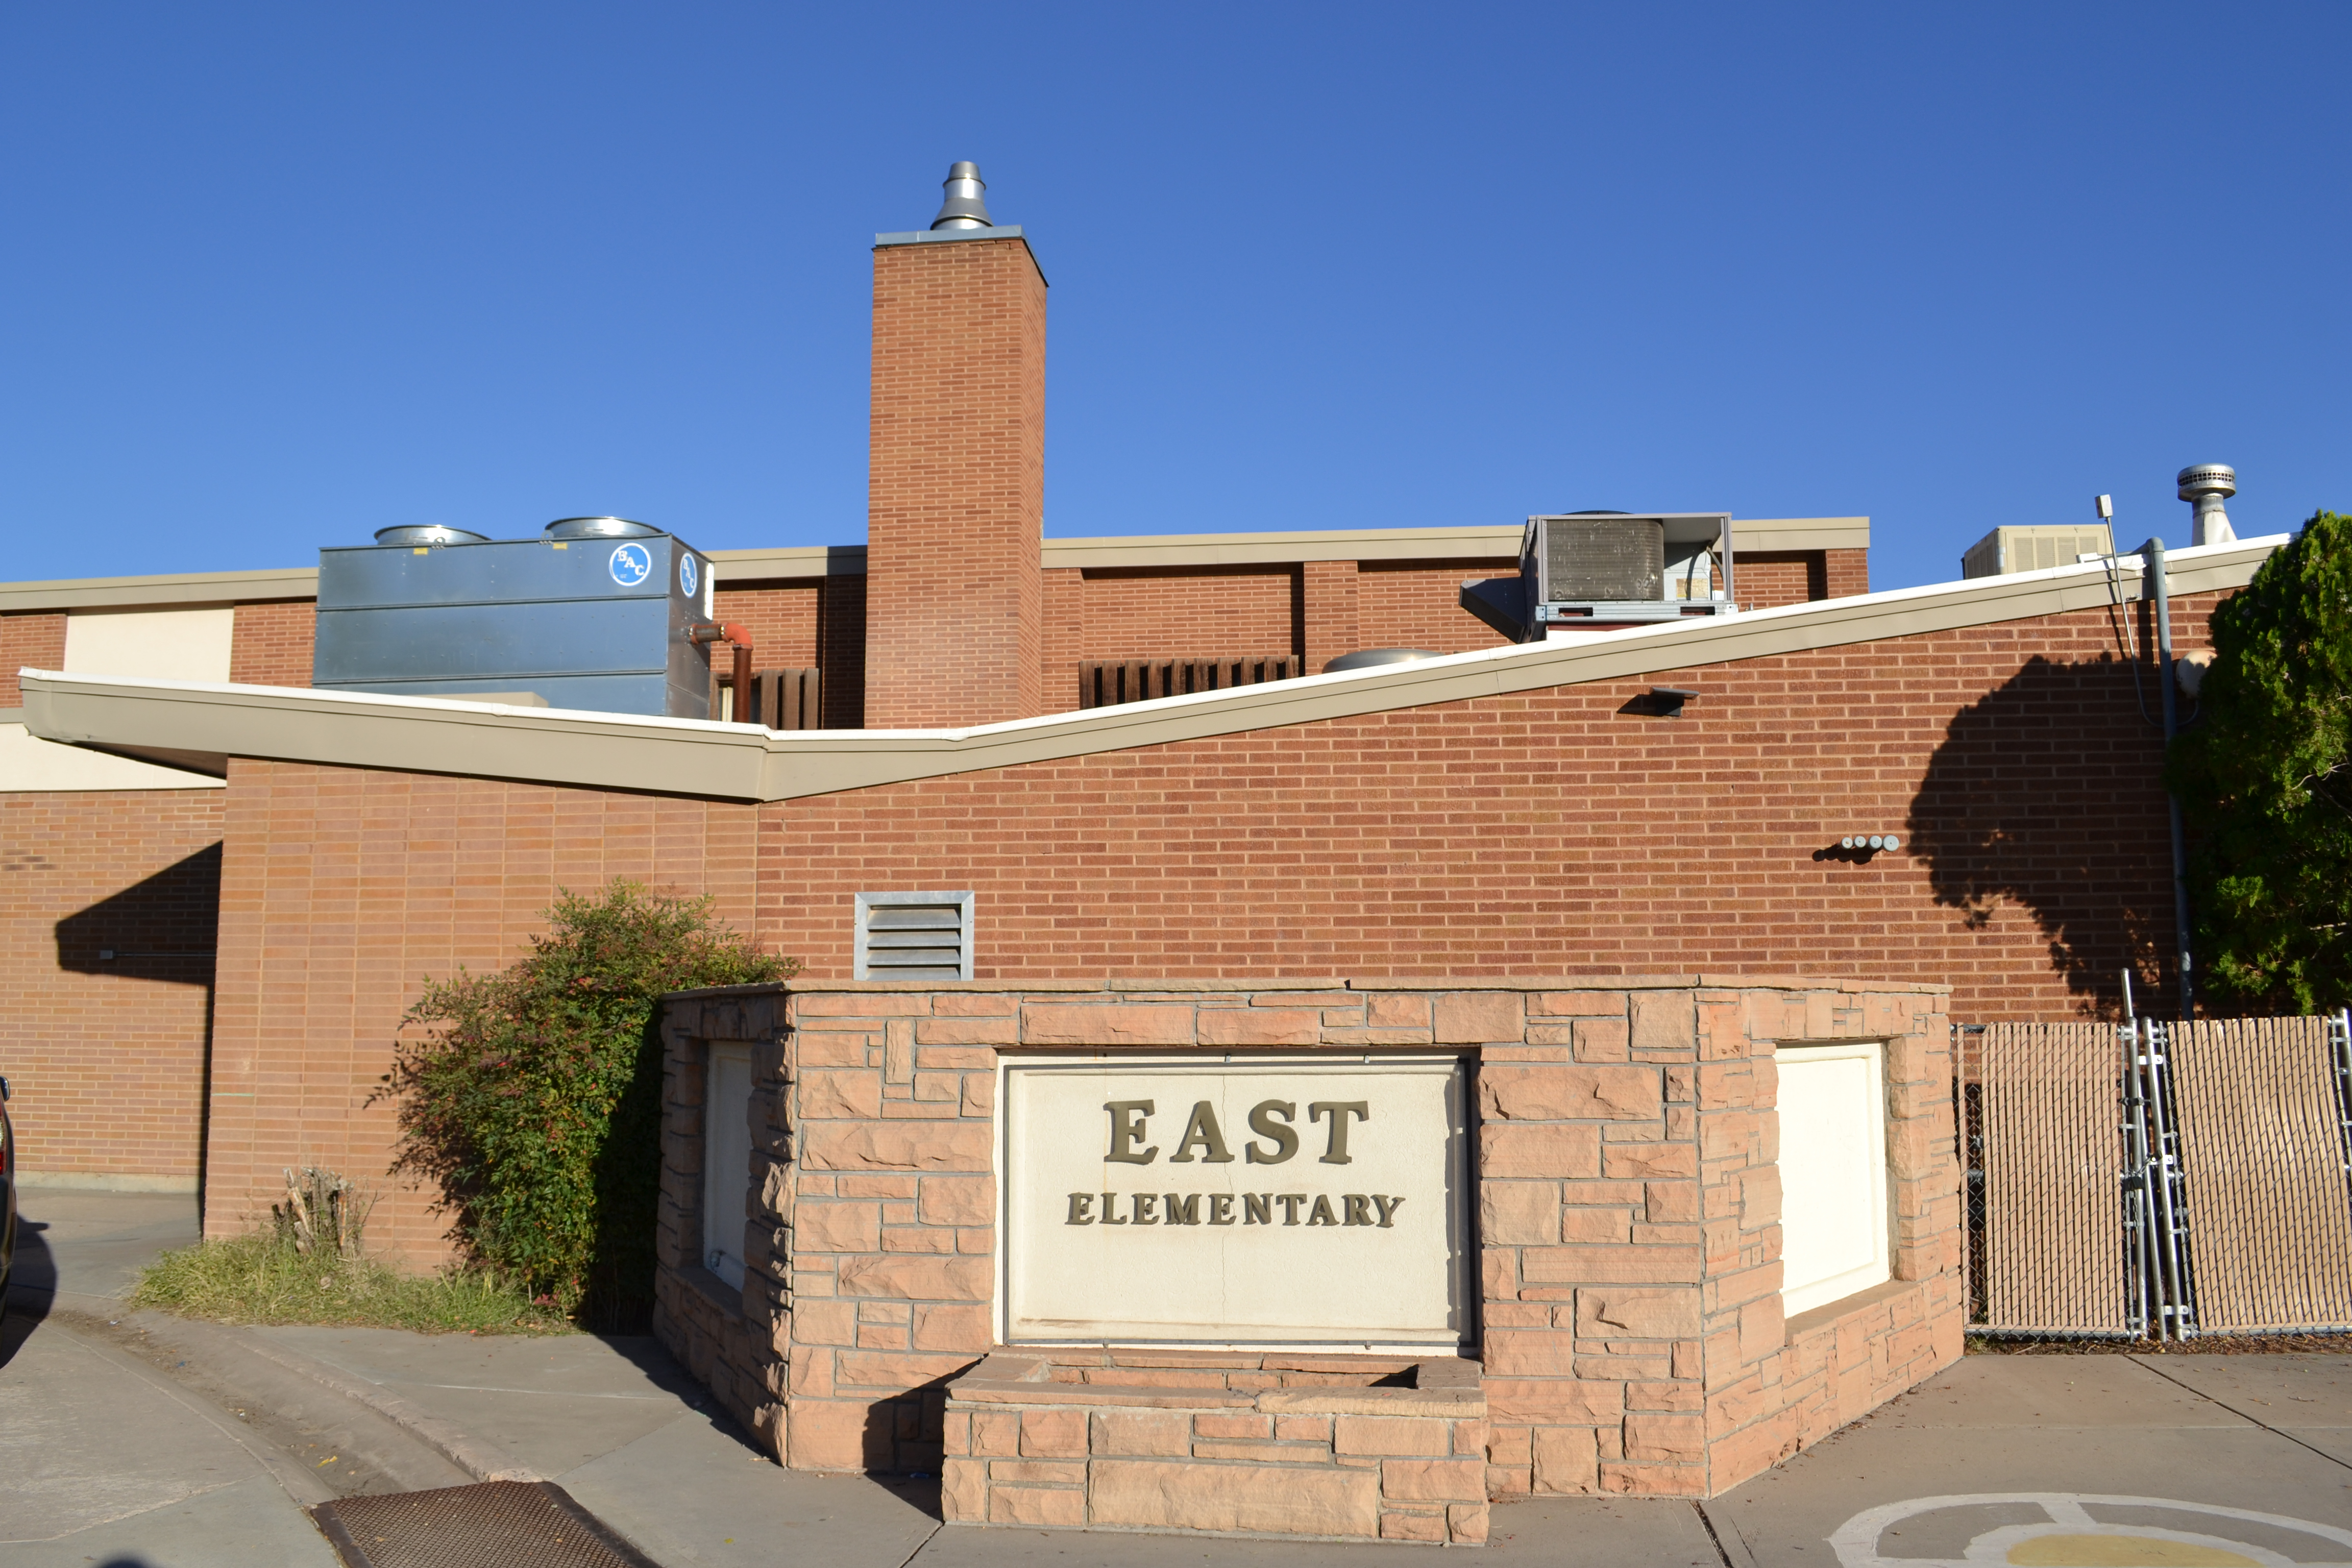 East Elementary School, St. George, Utah, Nov. 7, 2016 | Photo by Joseph Witham, St. George News